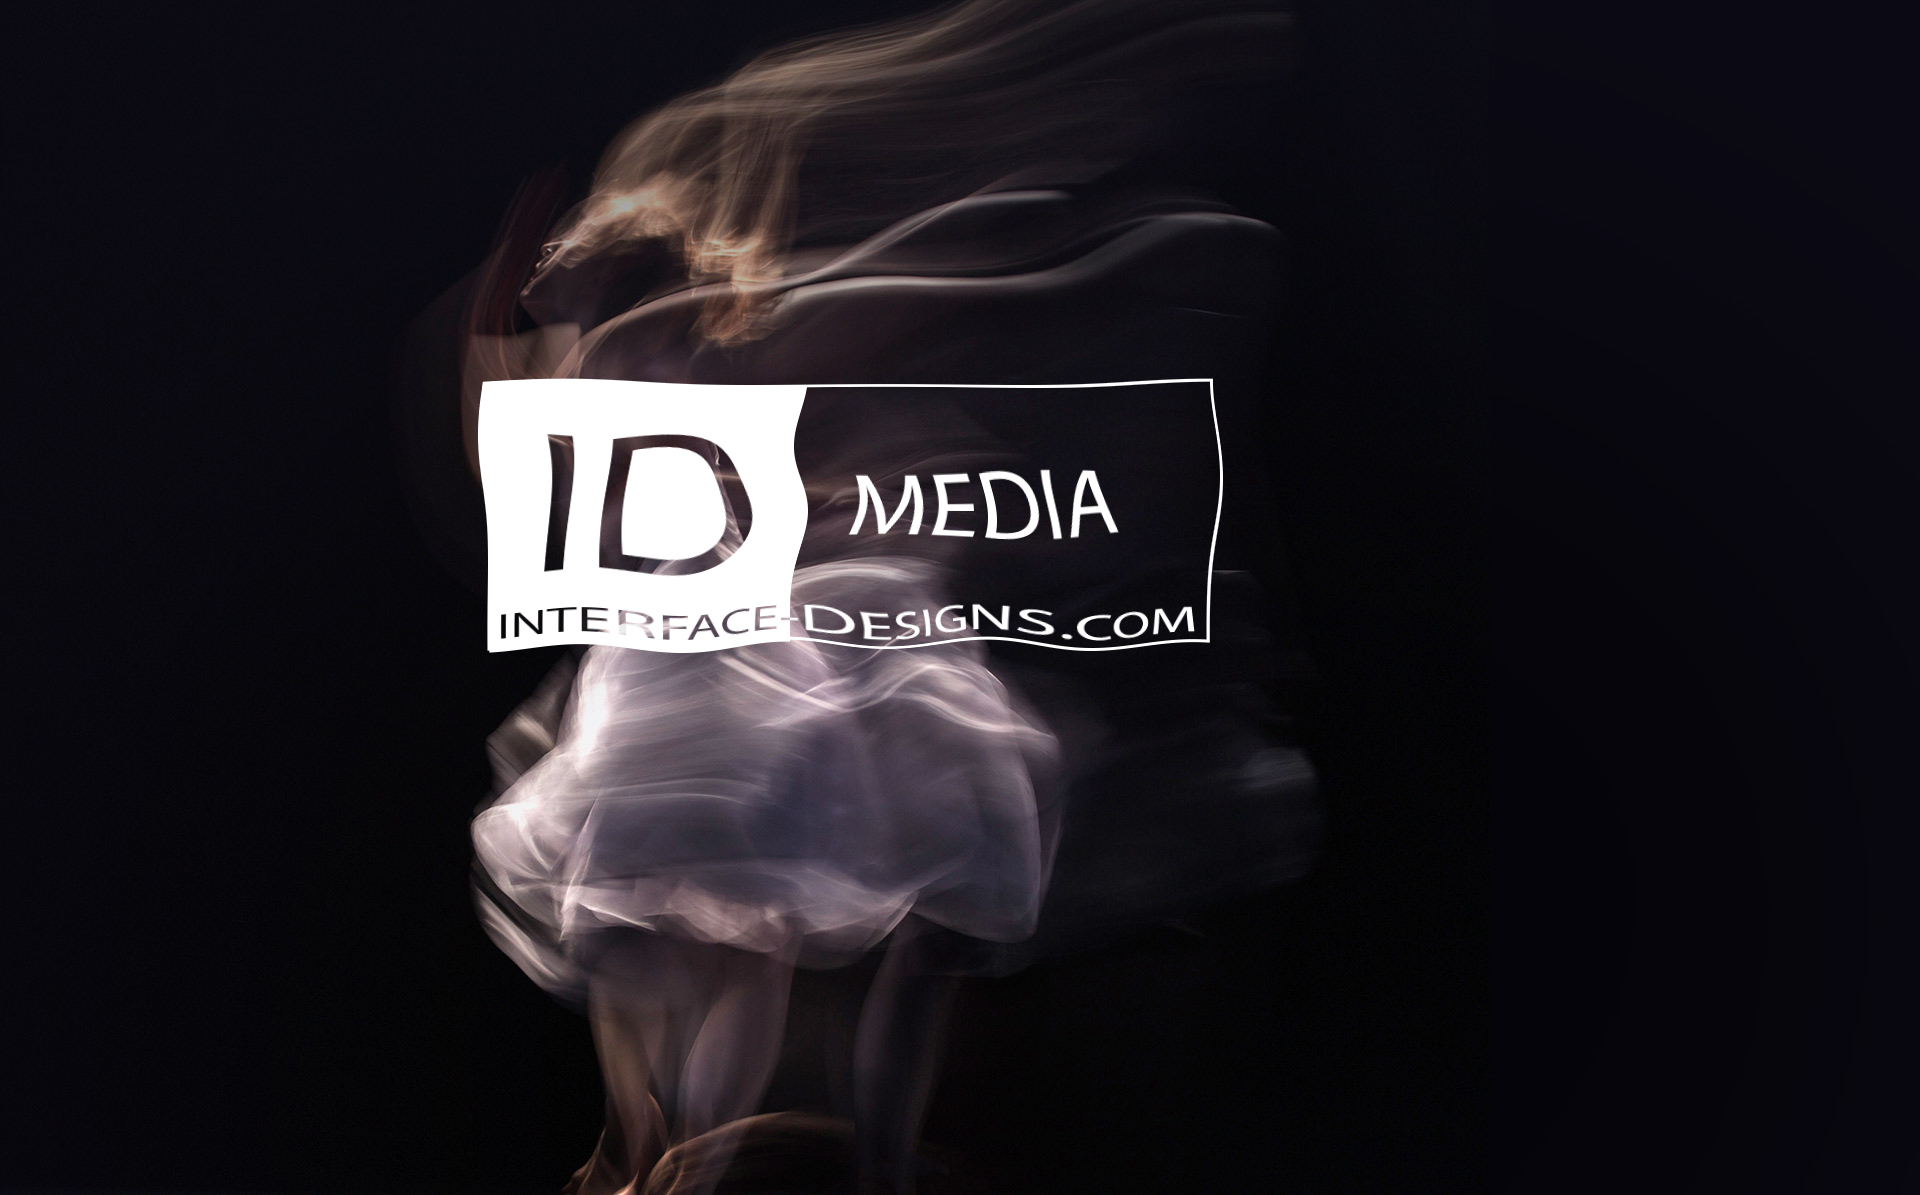 About ID-Media